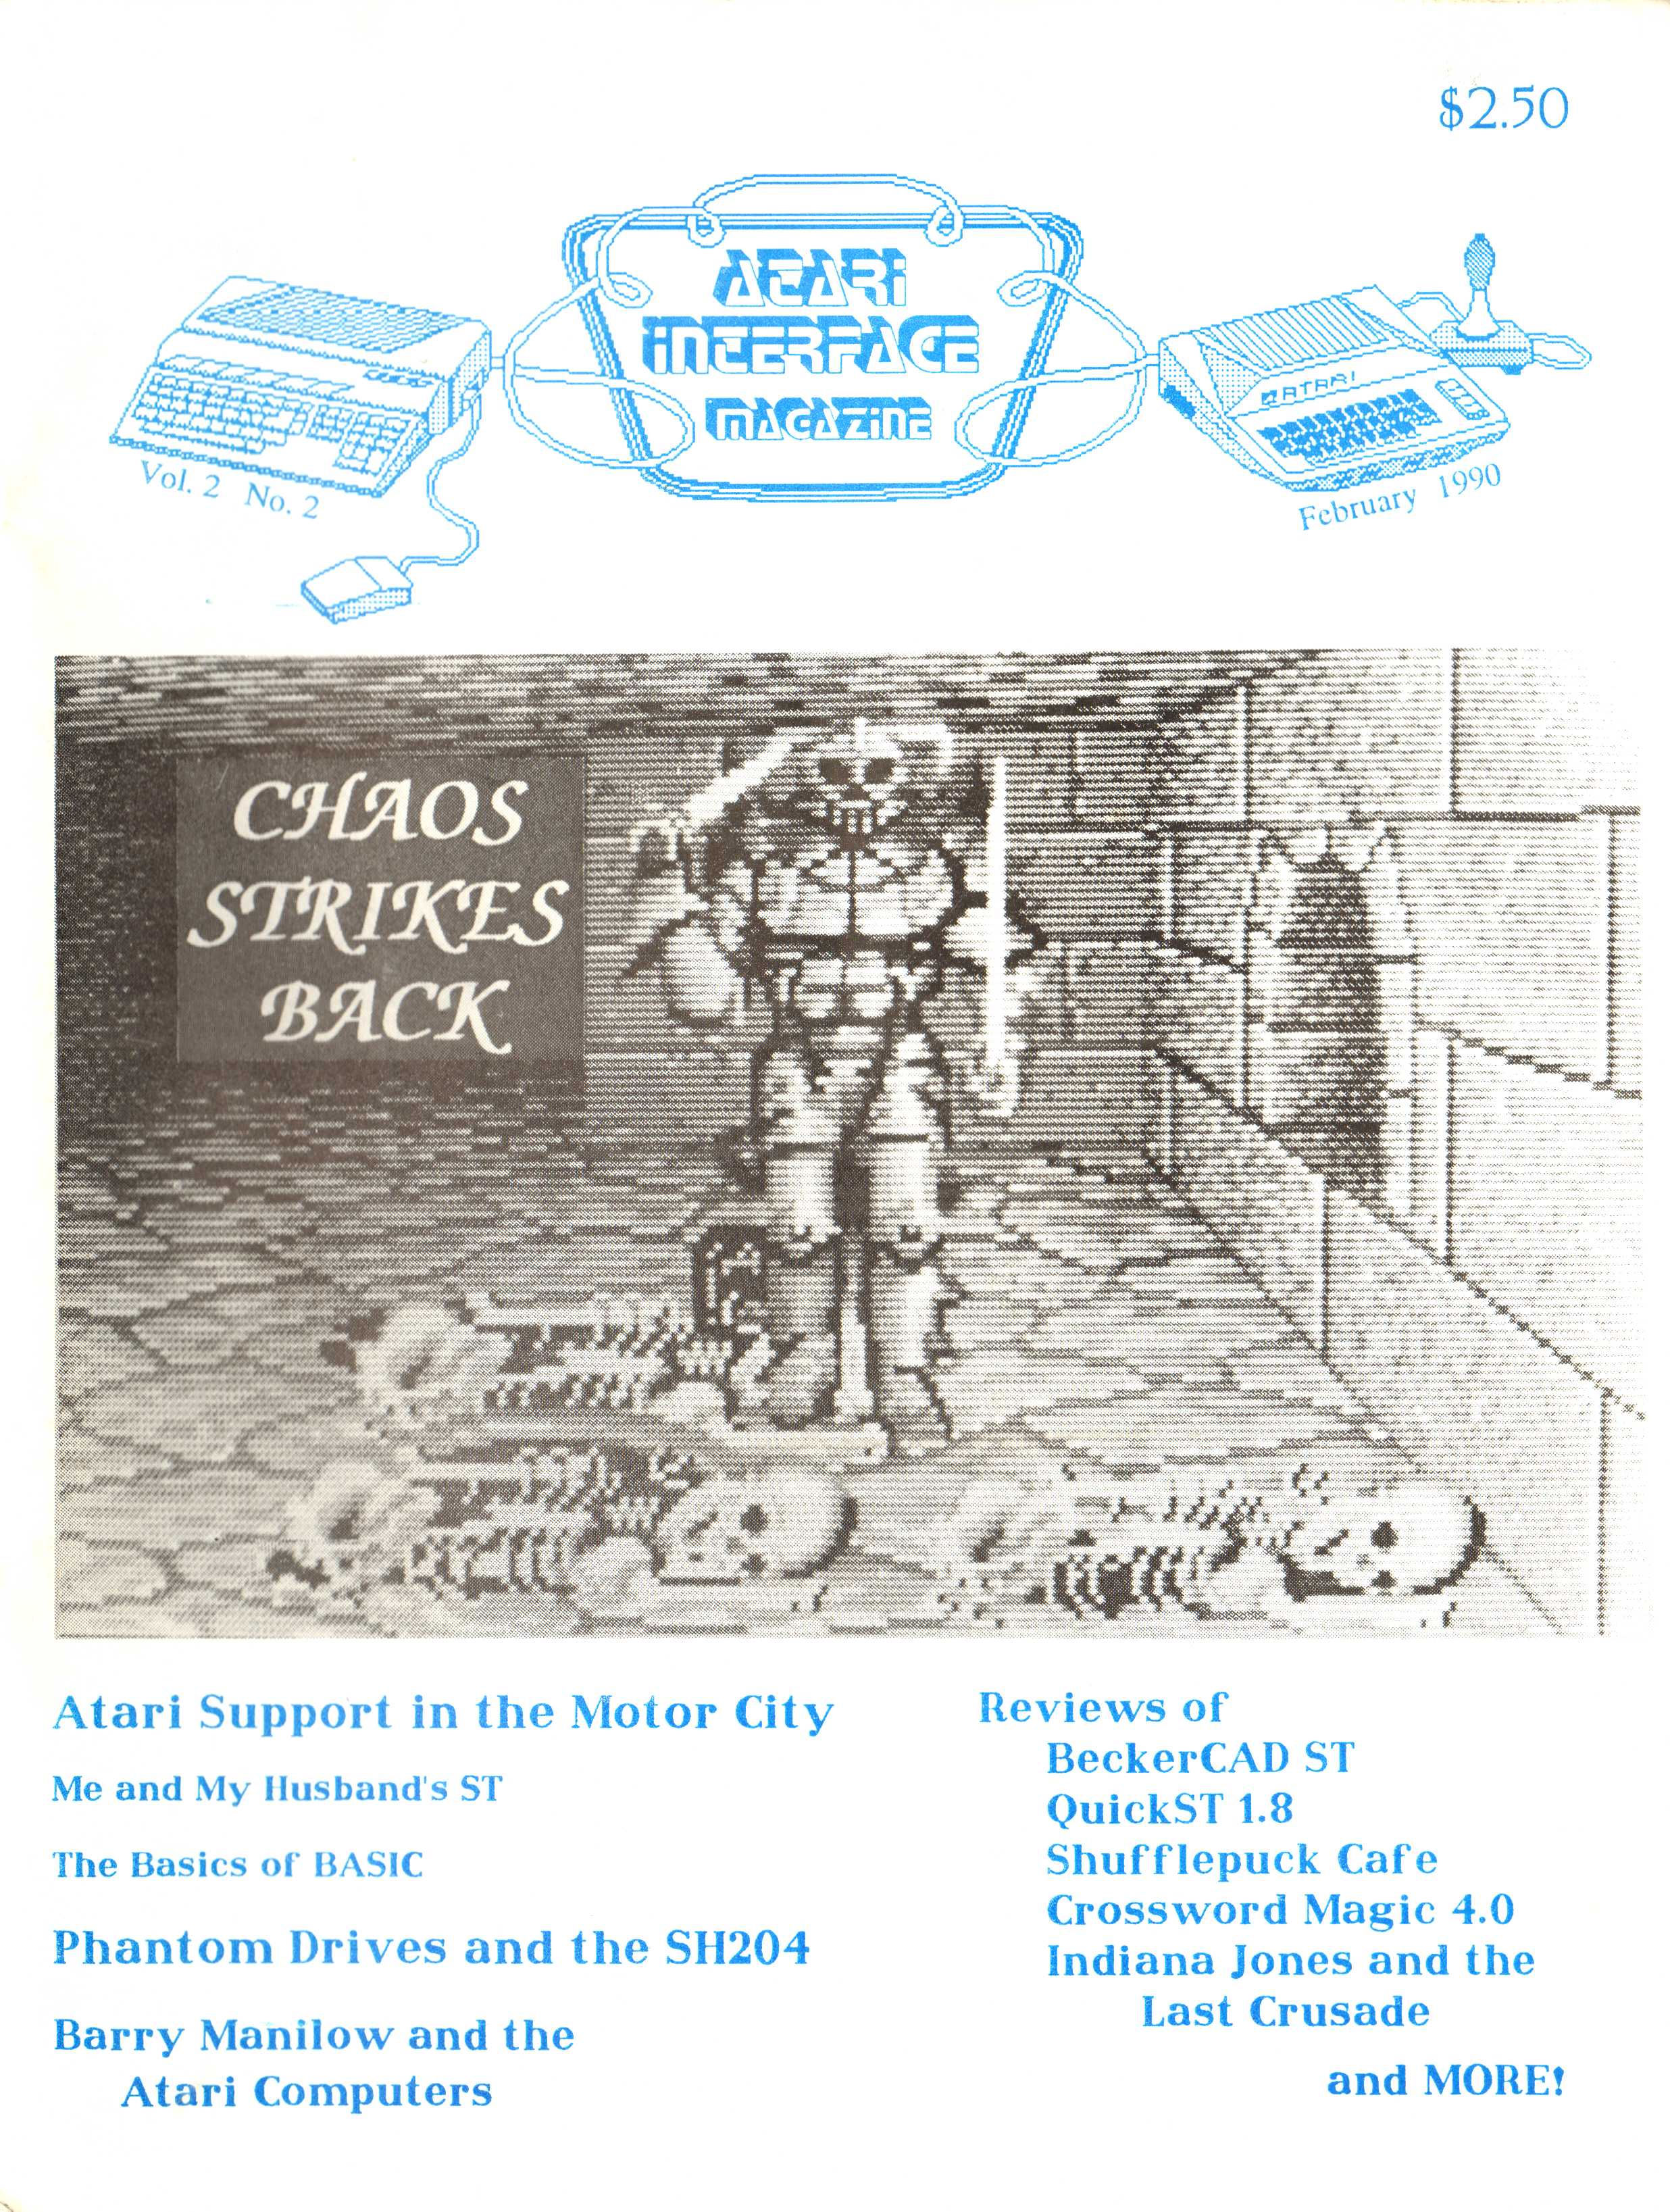 Chaos Strikes Back for Atari ST Cover published in American magazine 'Atari Interface Magazine', Vol 2 No 2 February 1990